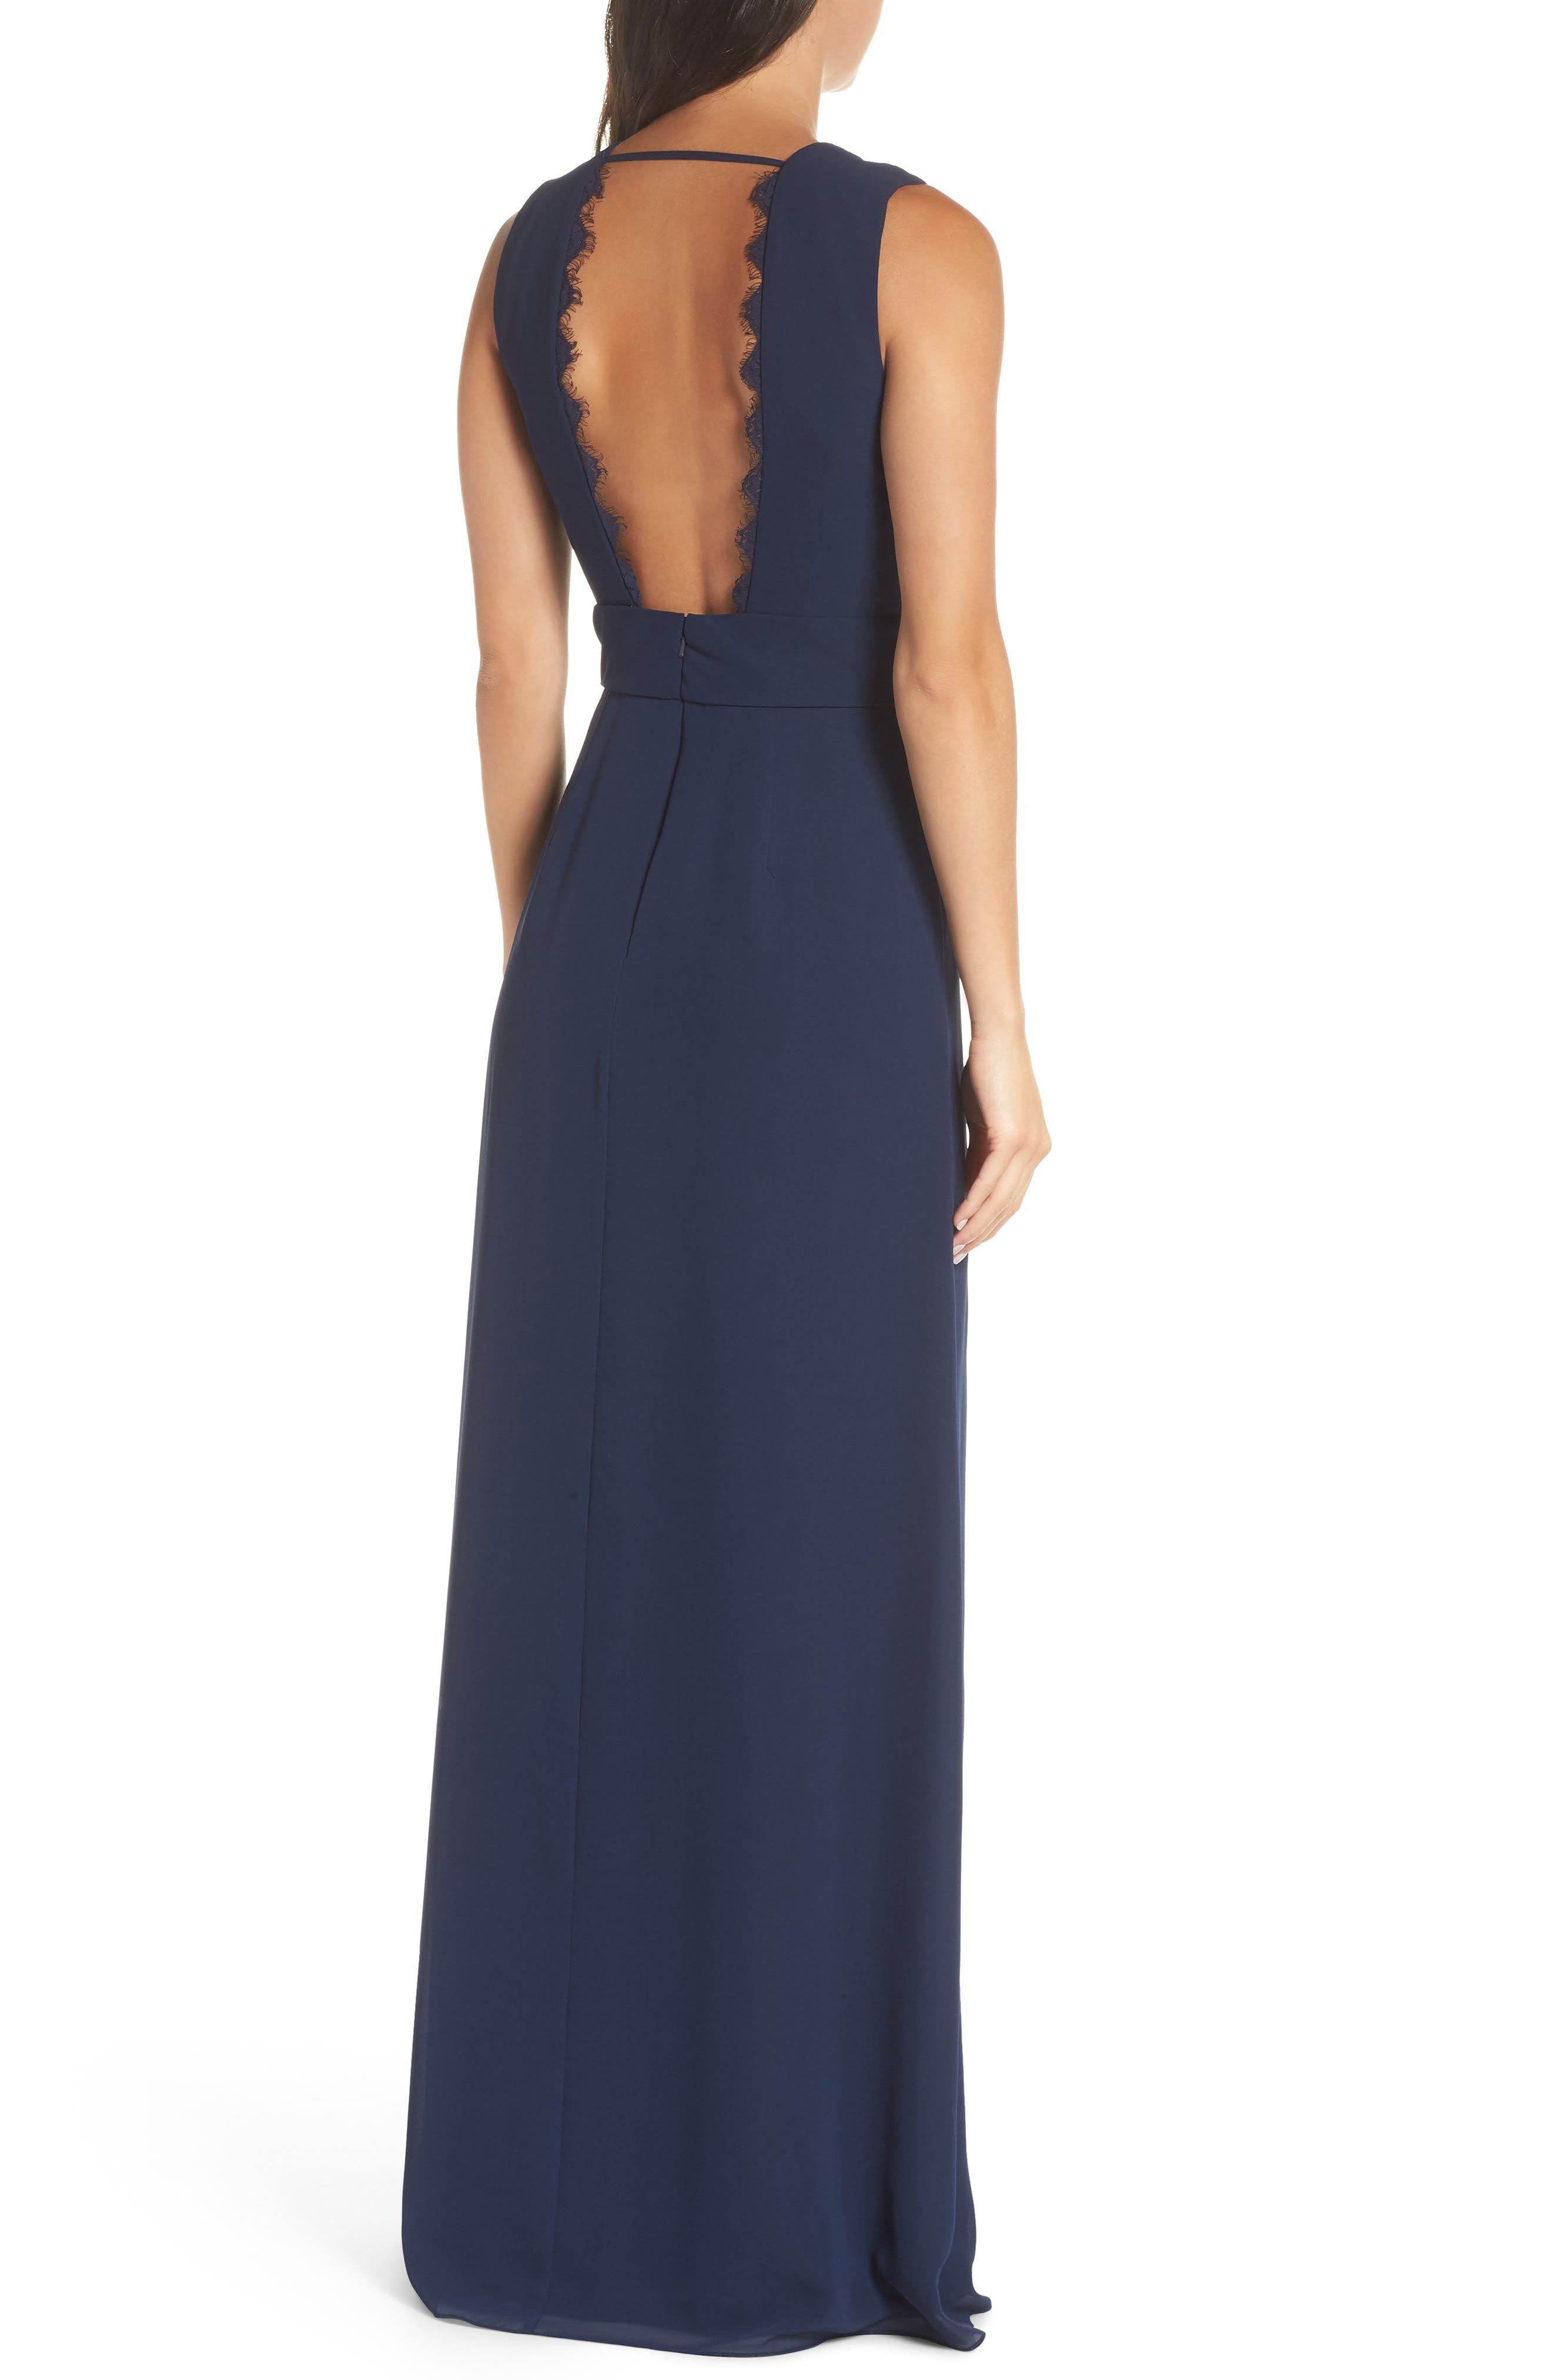 HAYLEY PAIGE OCCASIONS,                             Lace Inset Chiffon Gown,                             Alternate thumbnail 2, color,                             NAVY